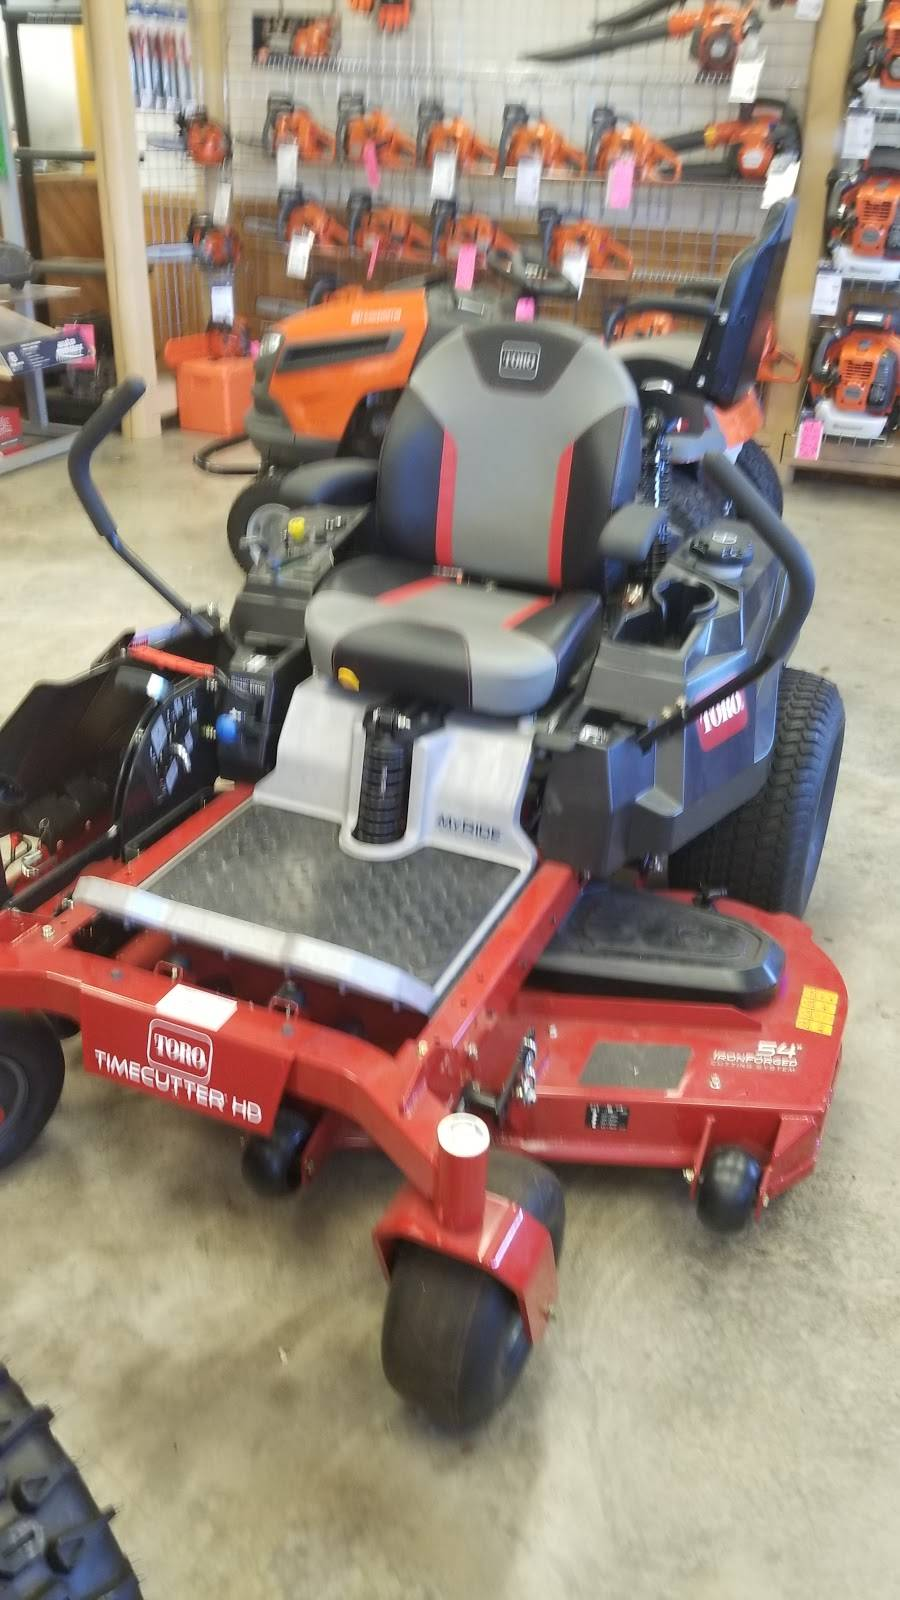 Kuhlmans Lawnmowers - Sales & Service - hardware store  | Photo 6 of 7 | Address: 1233 State Ave, Coraopolis, PA 15108, USA | Phone: (412) 264-4470